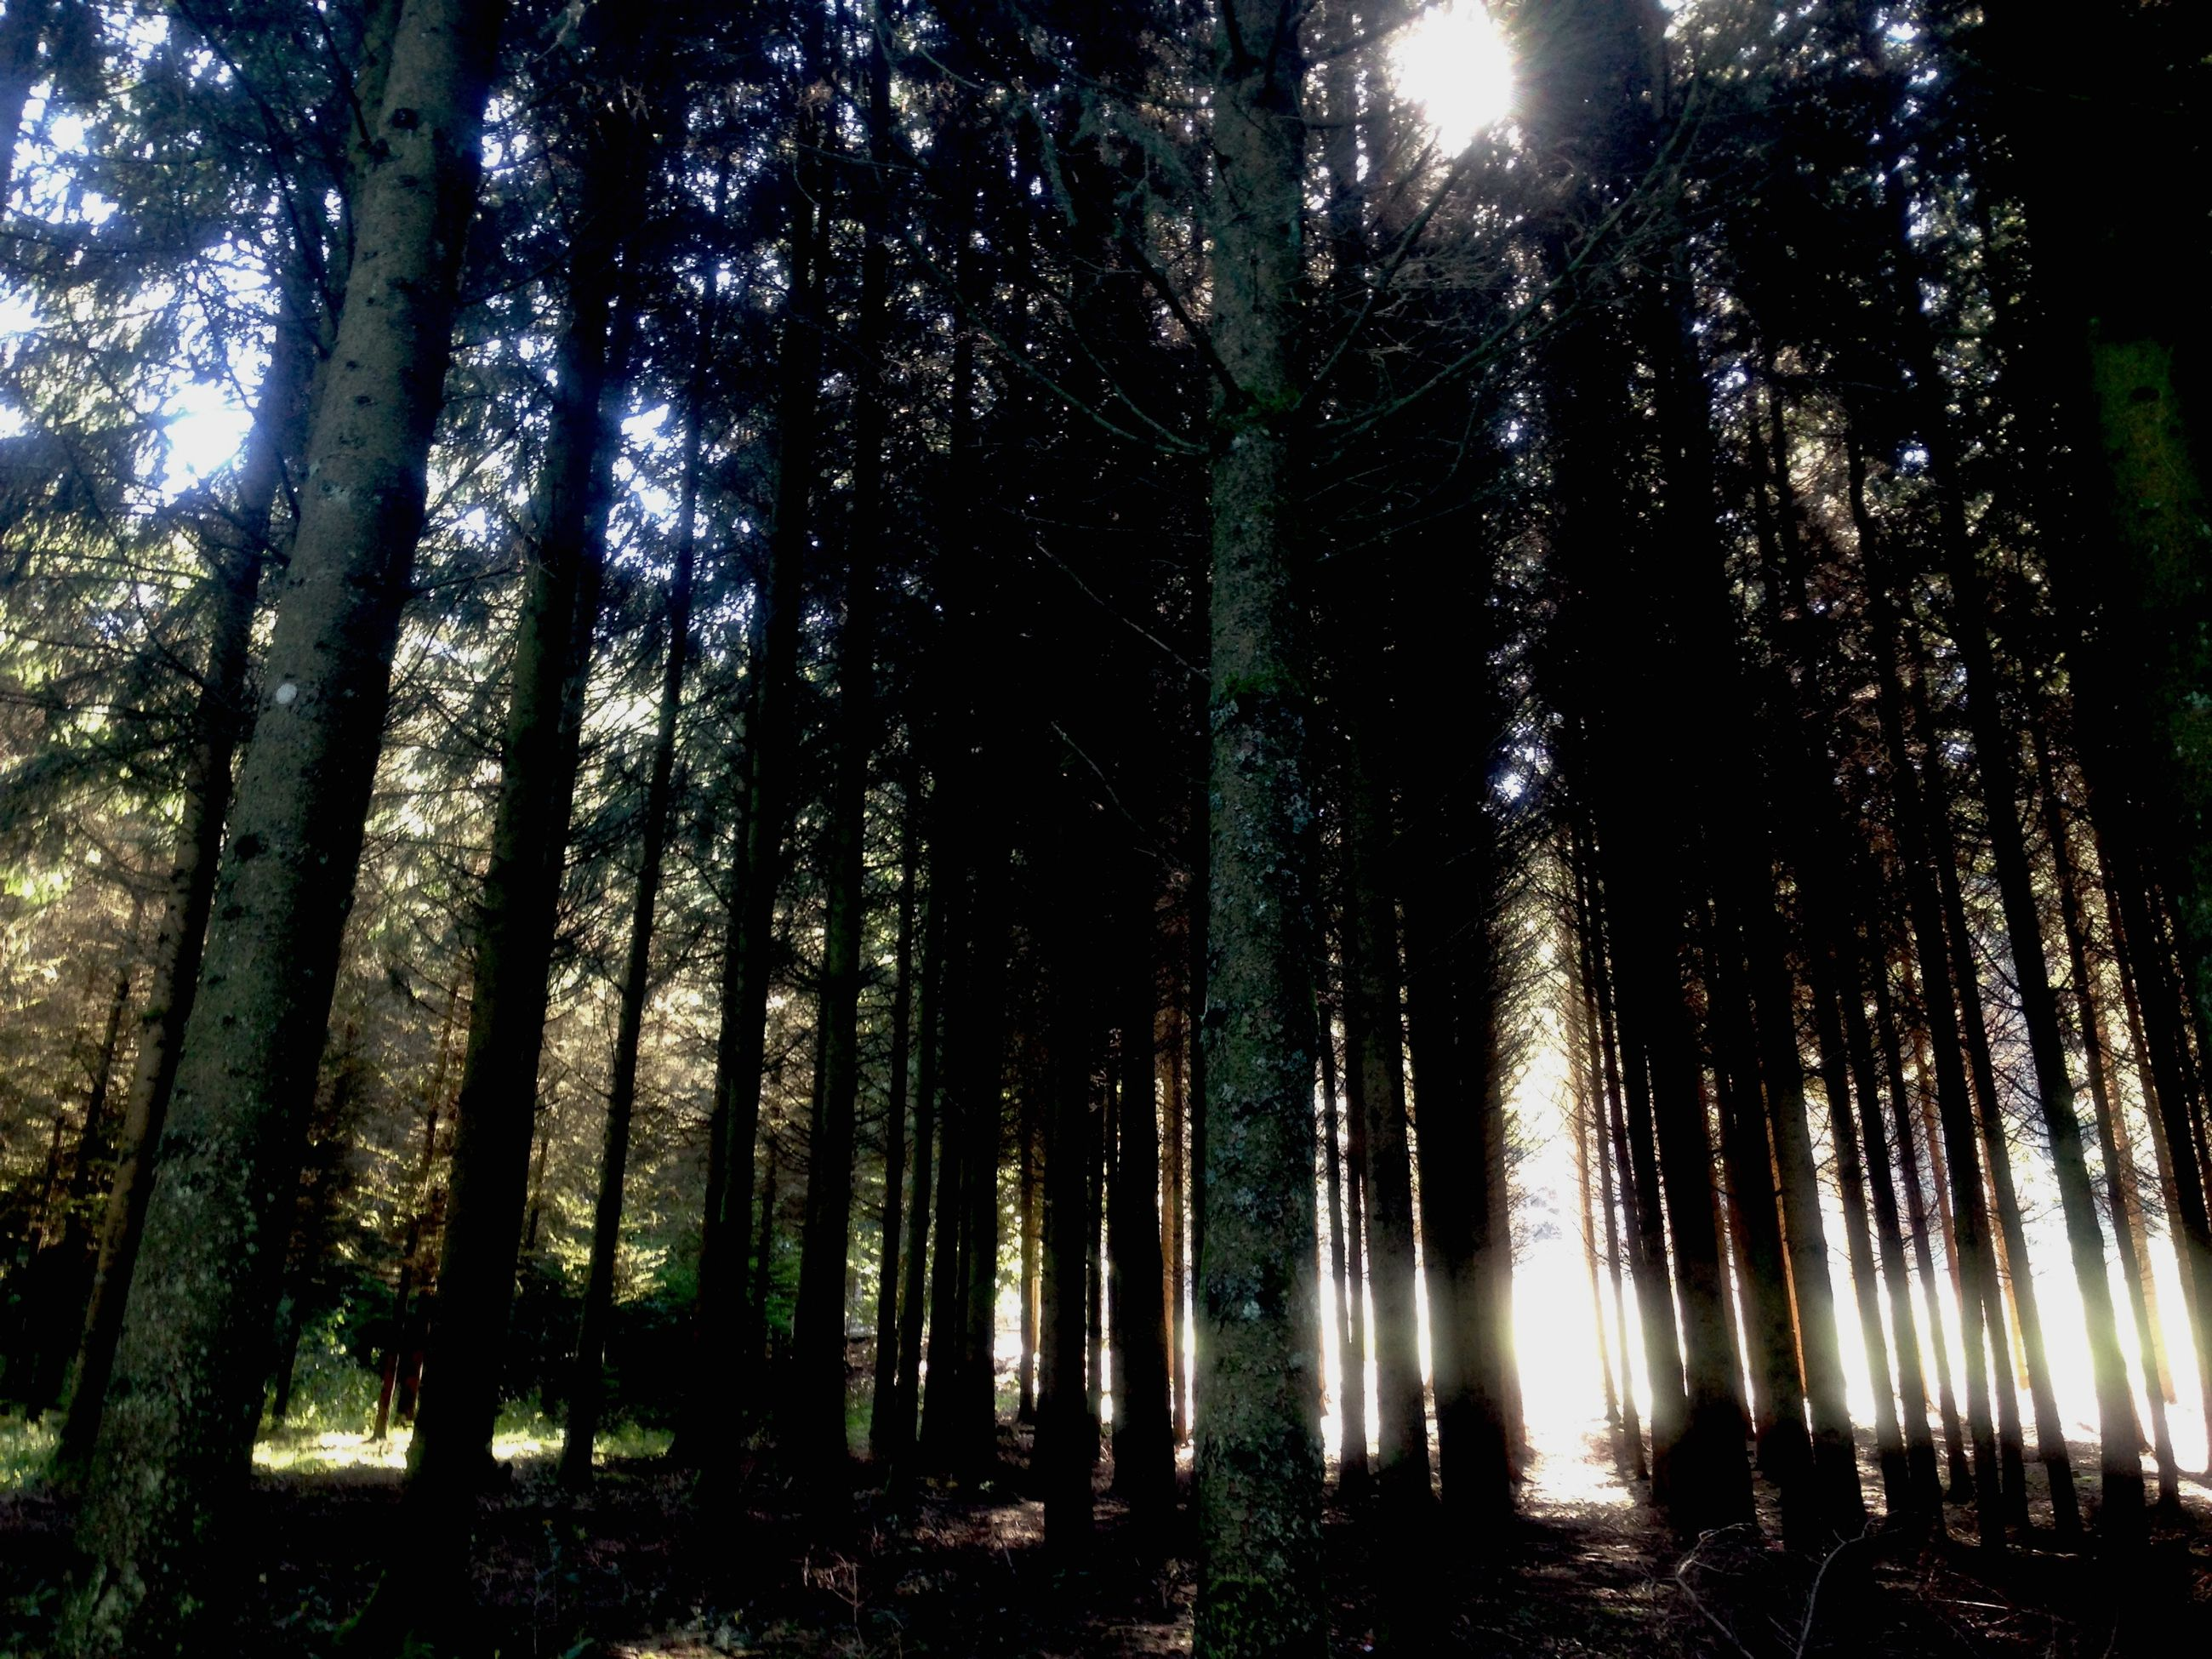 tree, tranquility, forest, growth, tree trunk, woodland, nature, tranquil scene, low angle view, beauty in nature, scenics, sunlight, silhouette, tall - high, sun, sunbeam, branch, idyllic, outdoors, non-urban scene